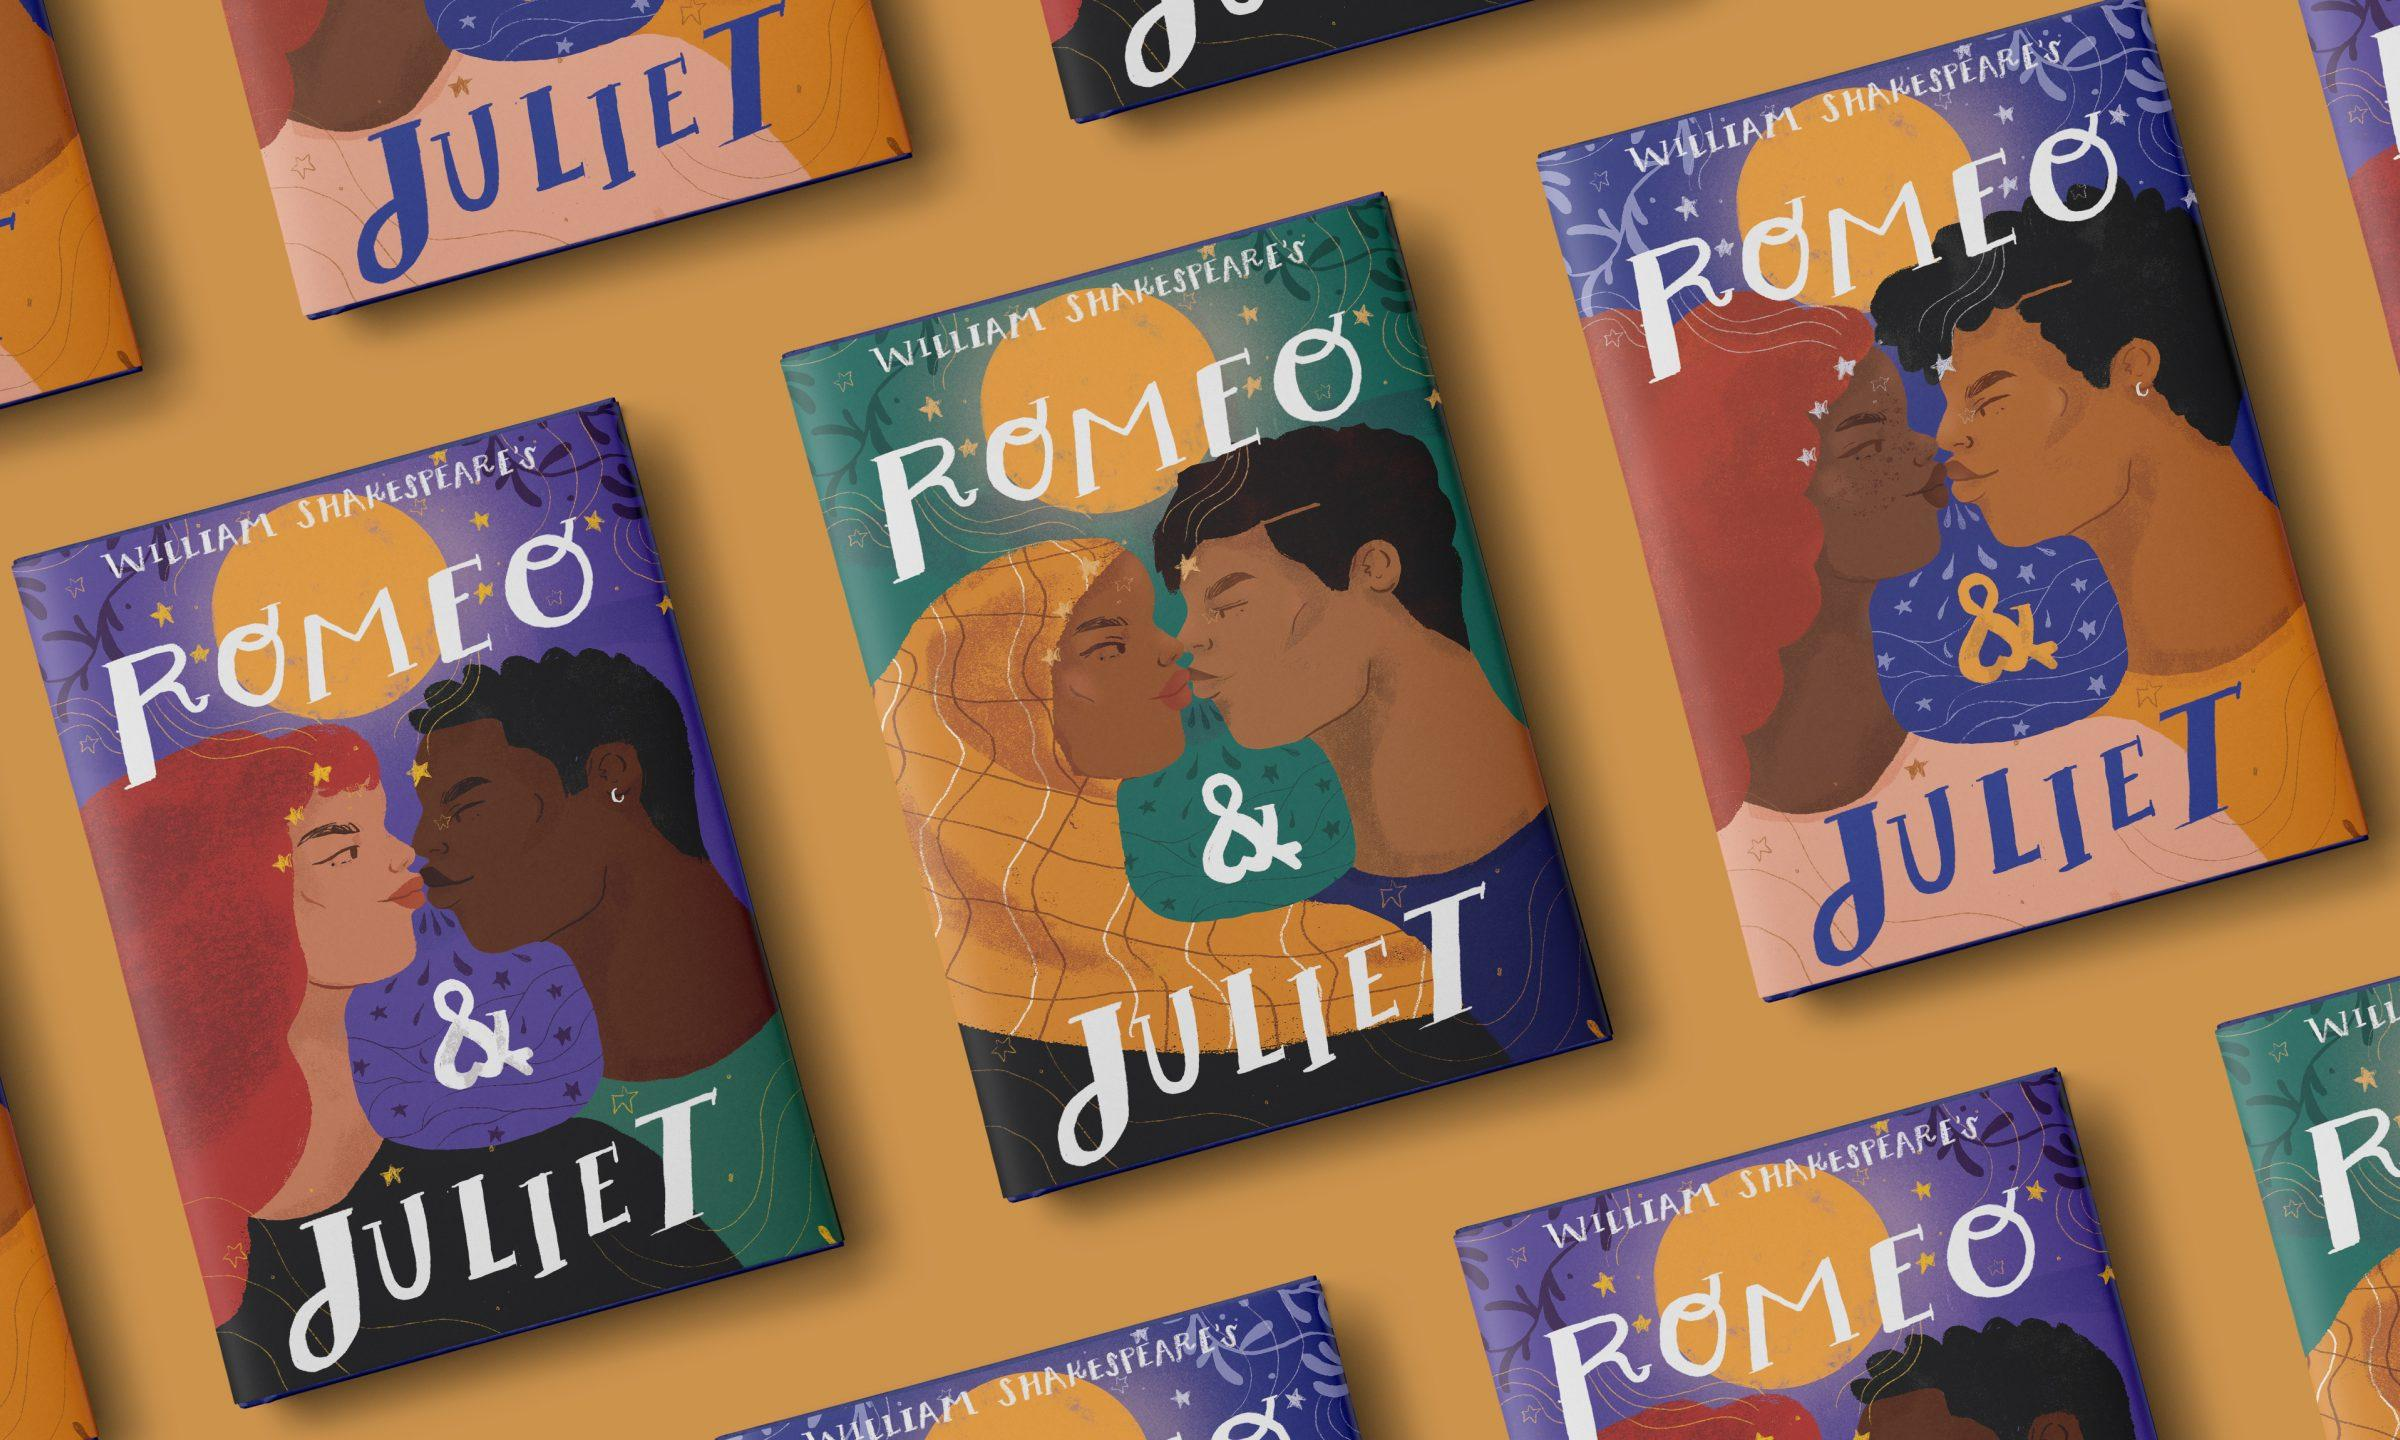 Why is Barnes & Noble putting 'literary blackface' on its shelves?